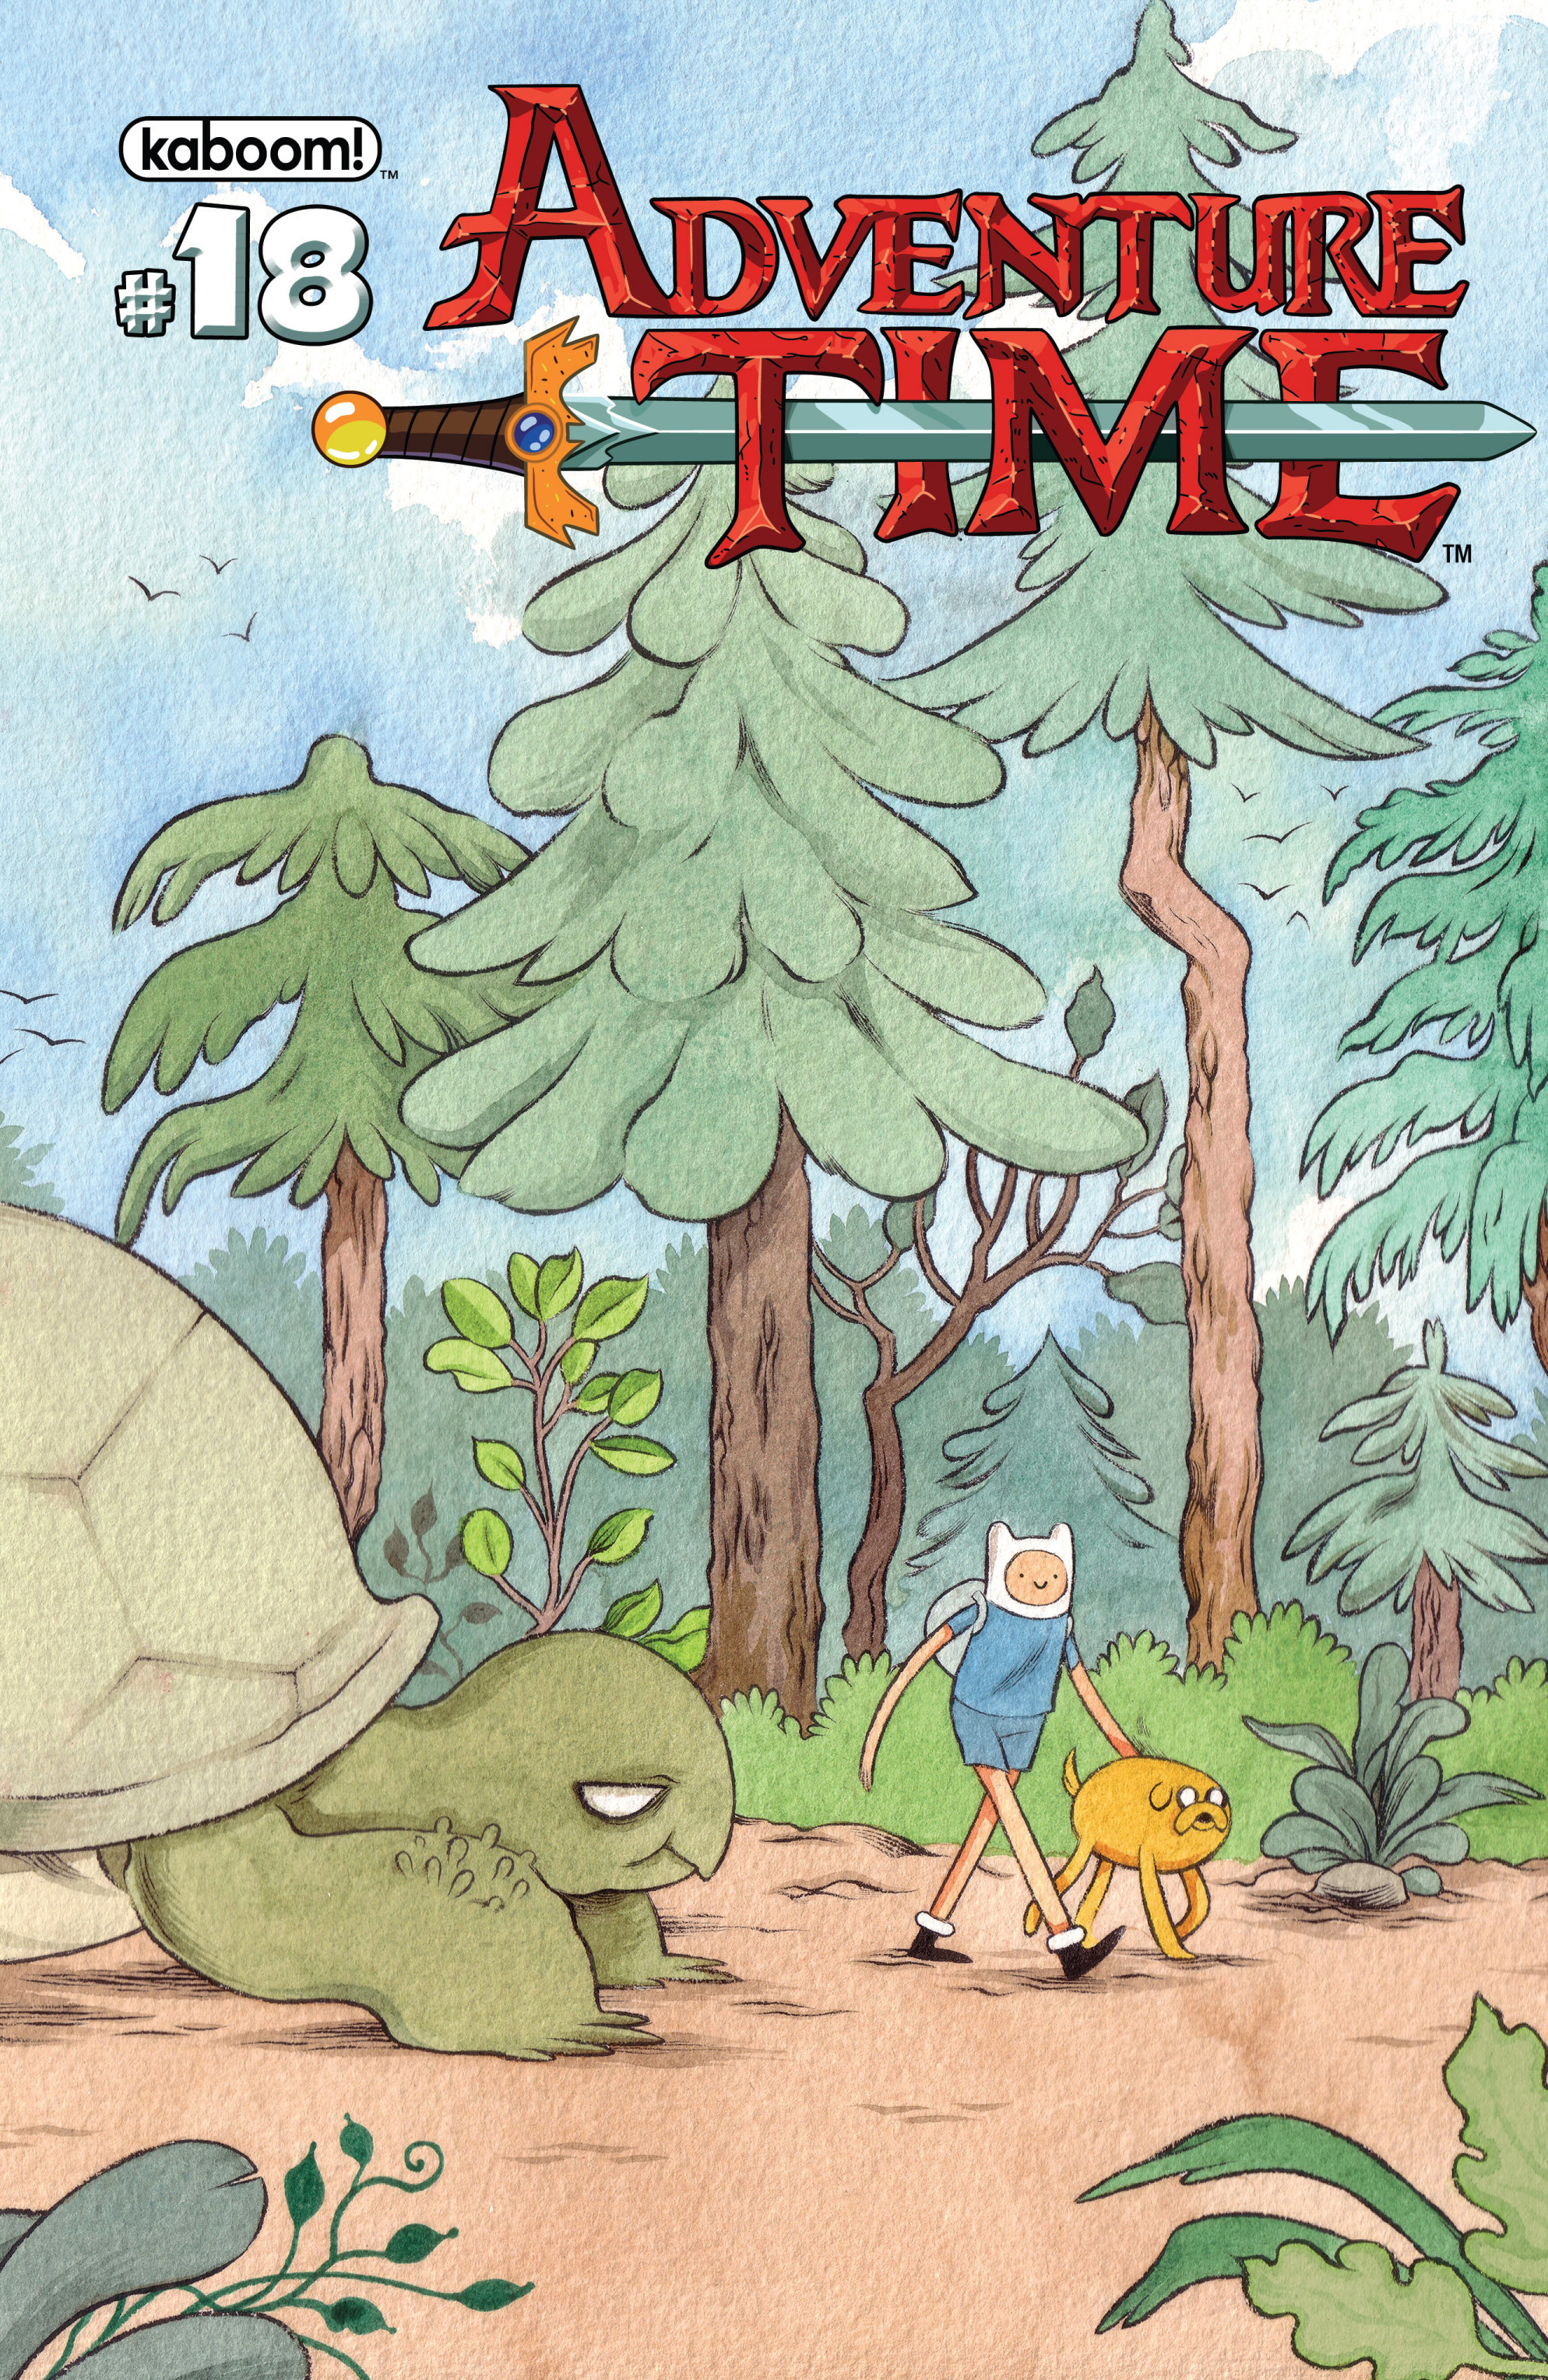 Read online Adventure Time comic -  Issue #18 - 2